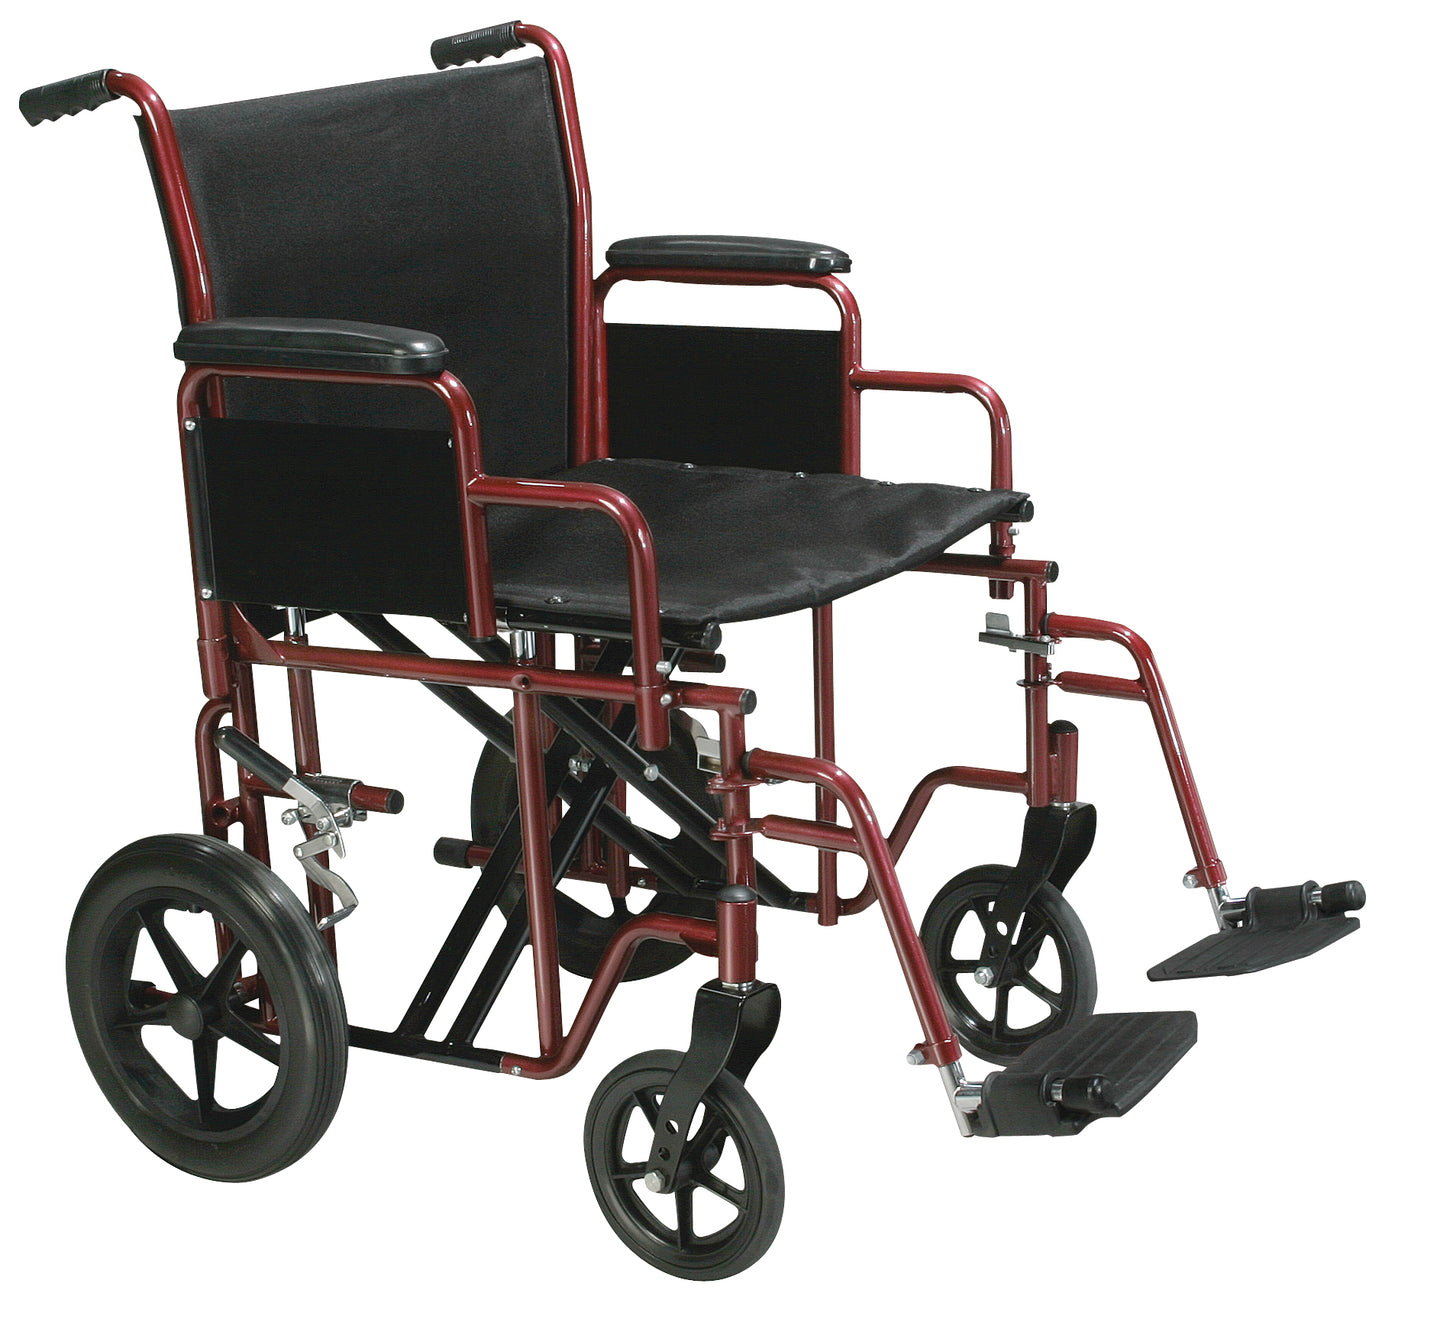 Drive Bariatric Heavy Duty Transport Wheelchair with Swing Away Footrest- 22